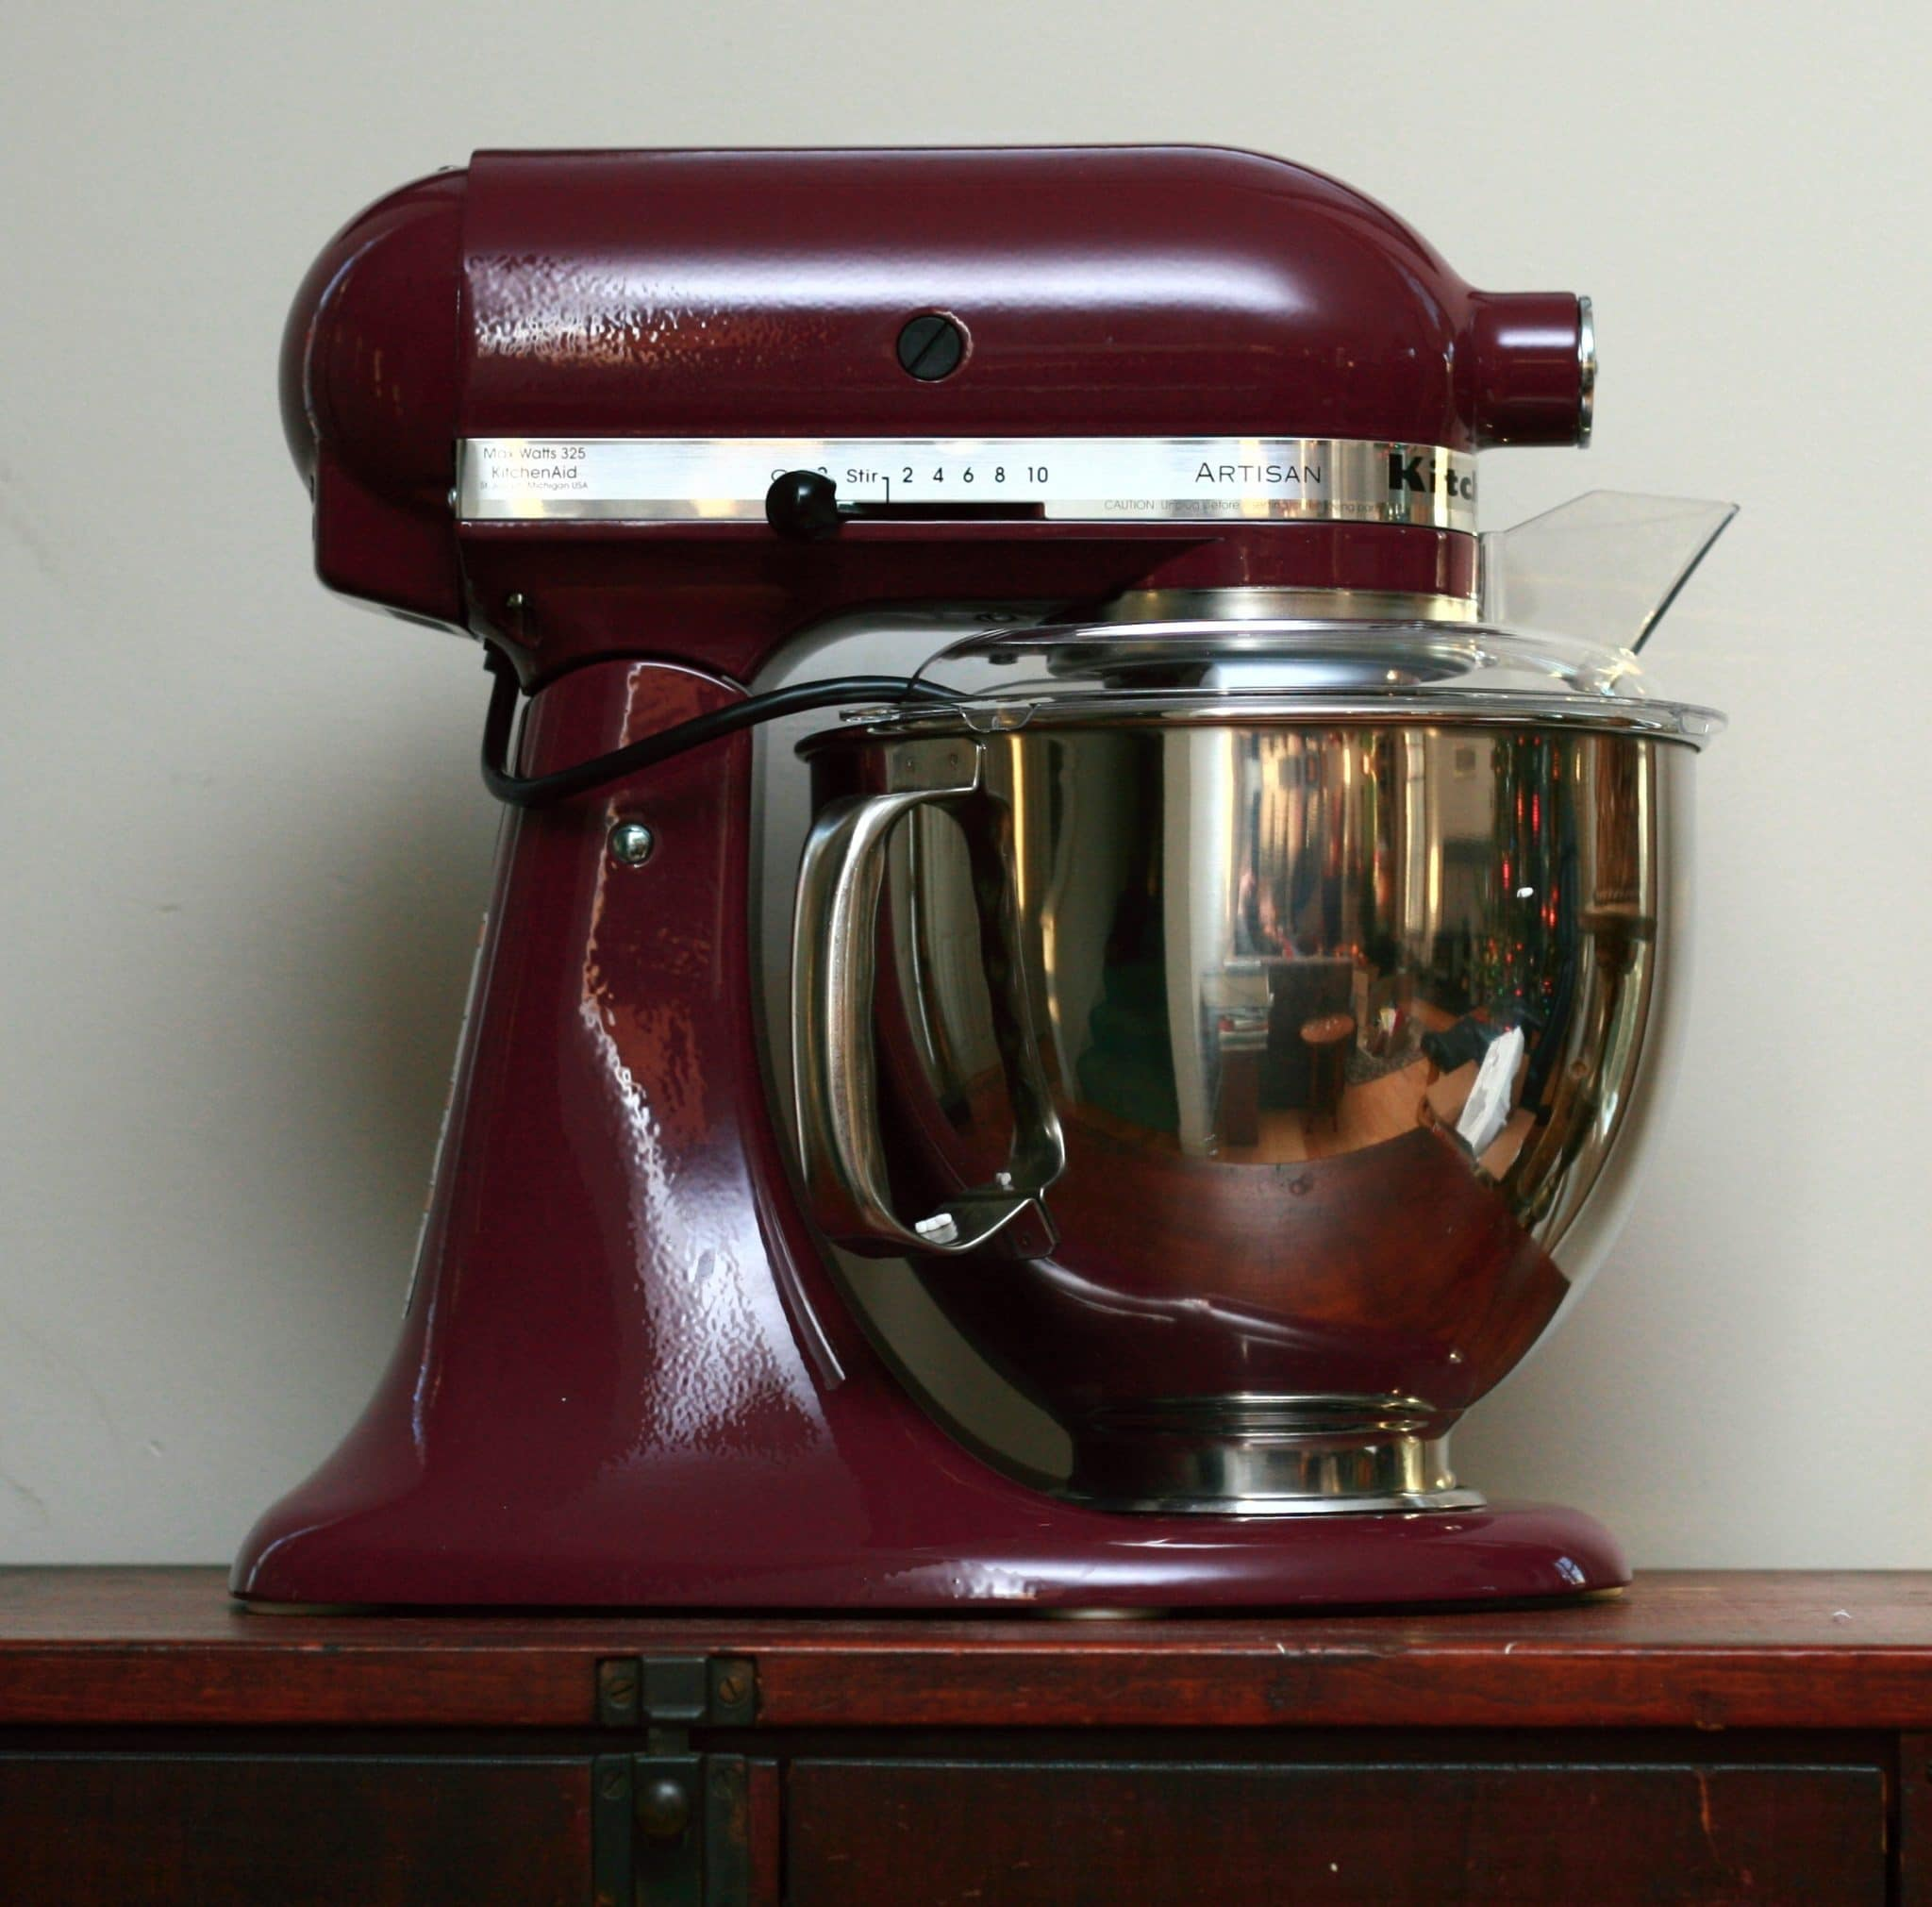 Kitchenaid Pro Mixer An Overview 600 Vs 6000 Hd